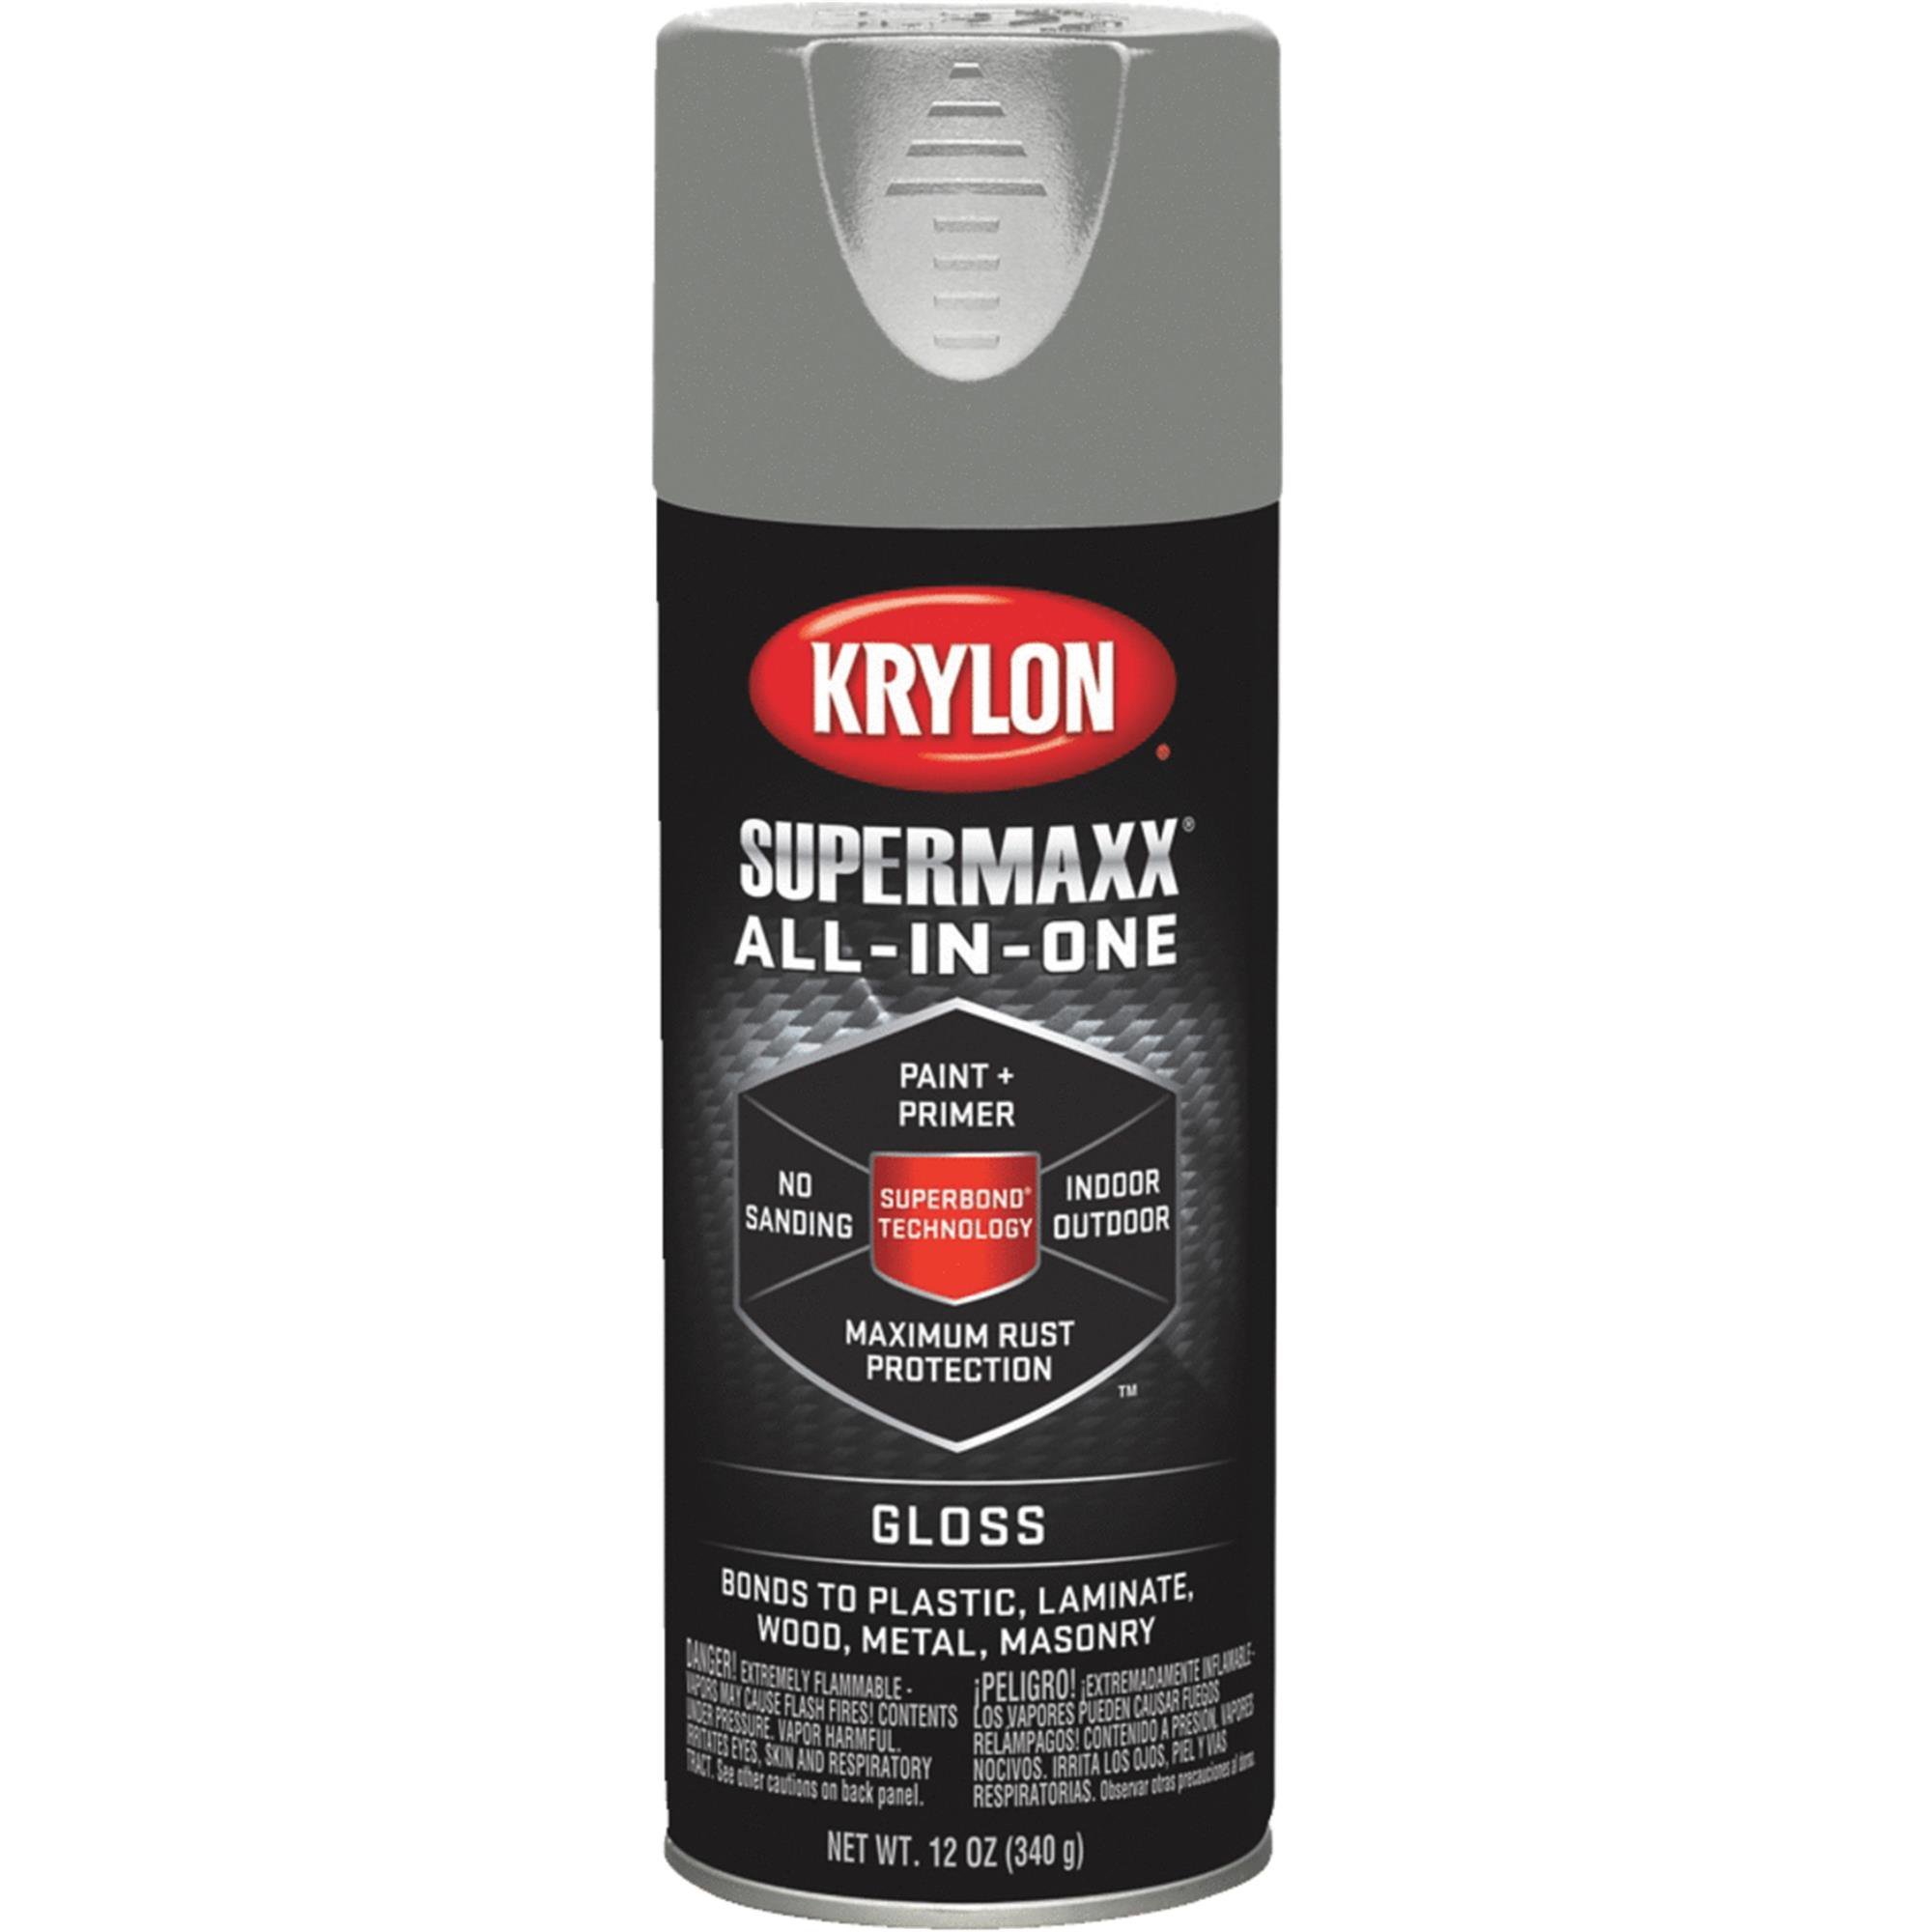 Krylon SUPERMAXX All-In-One Spray Paint